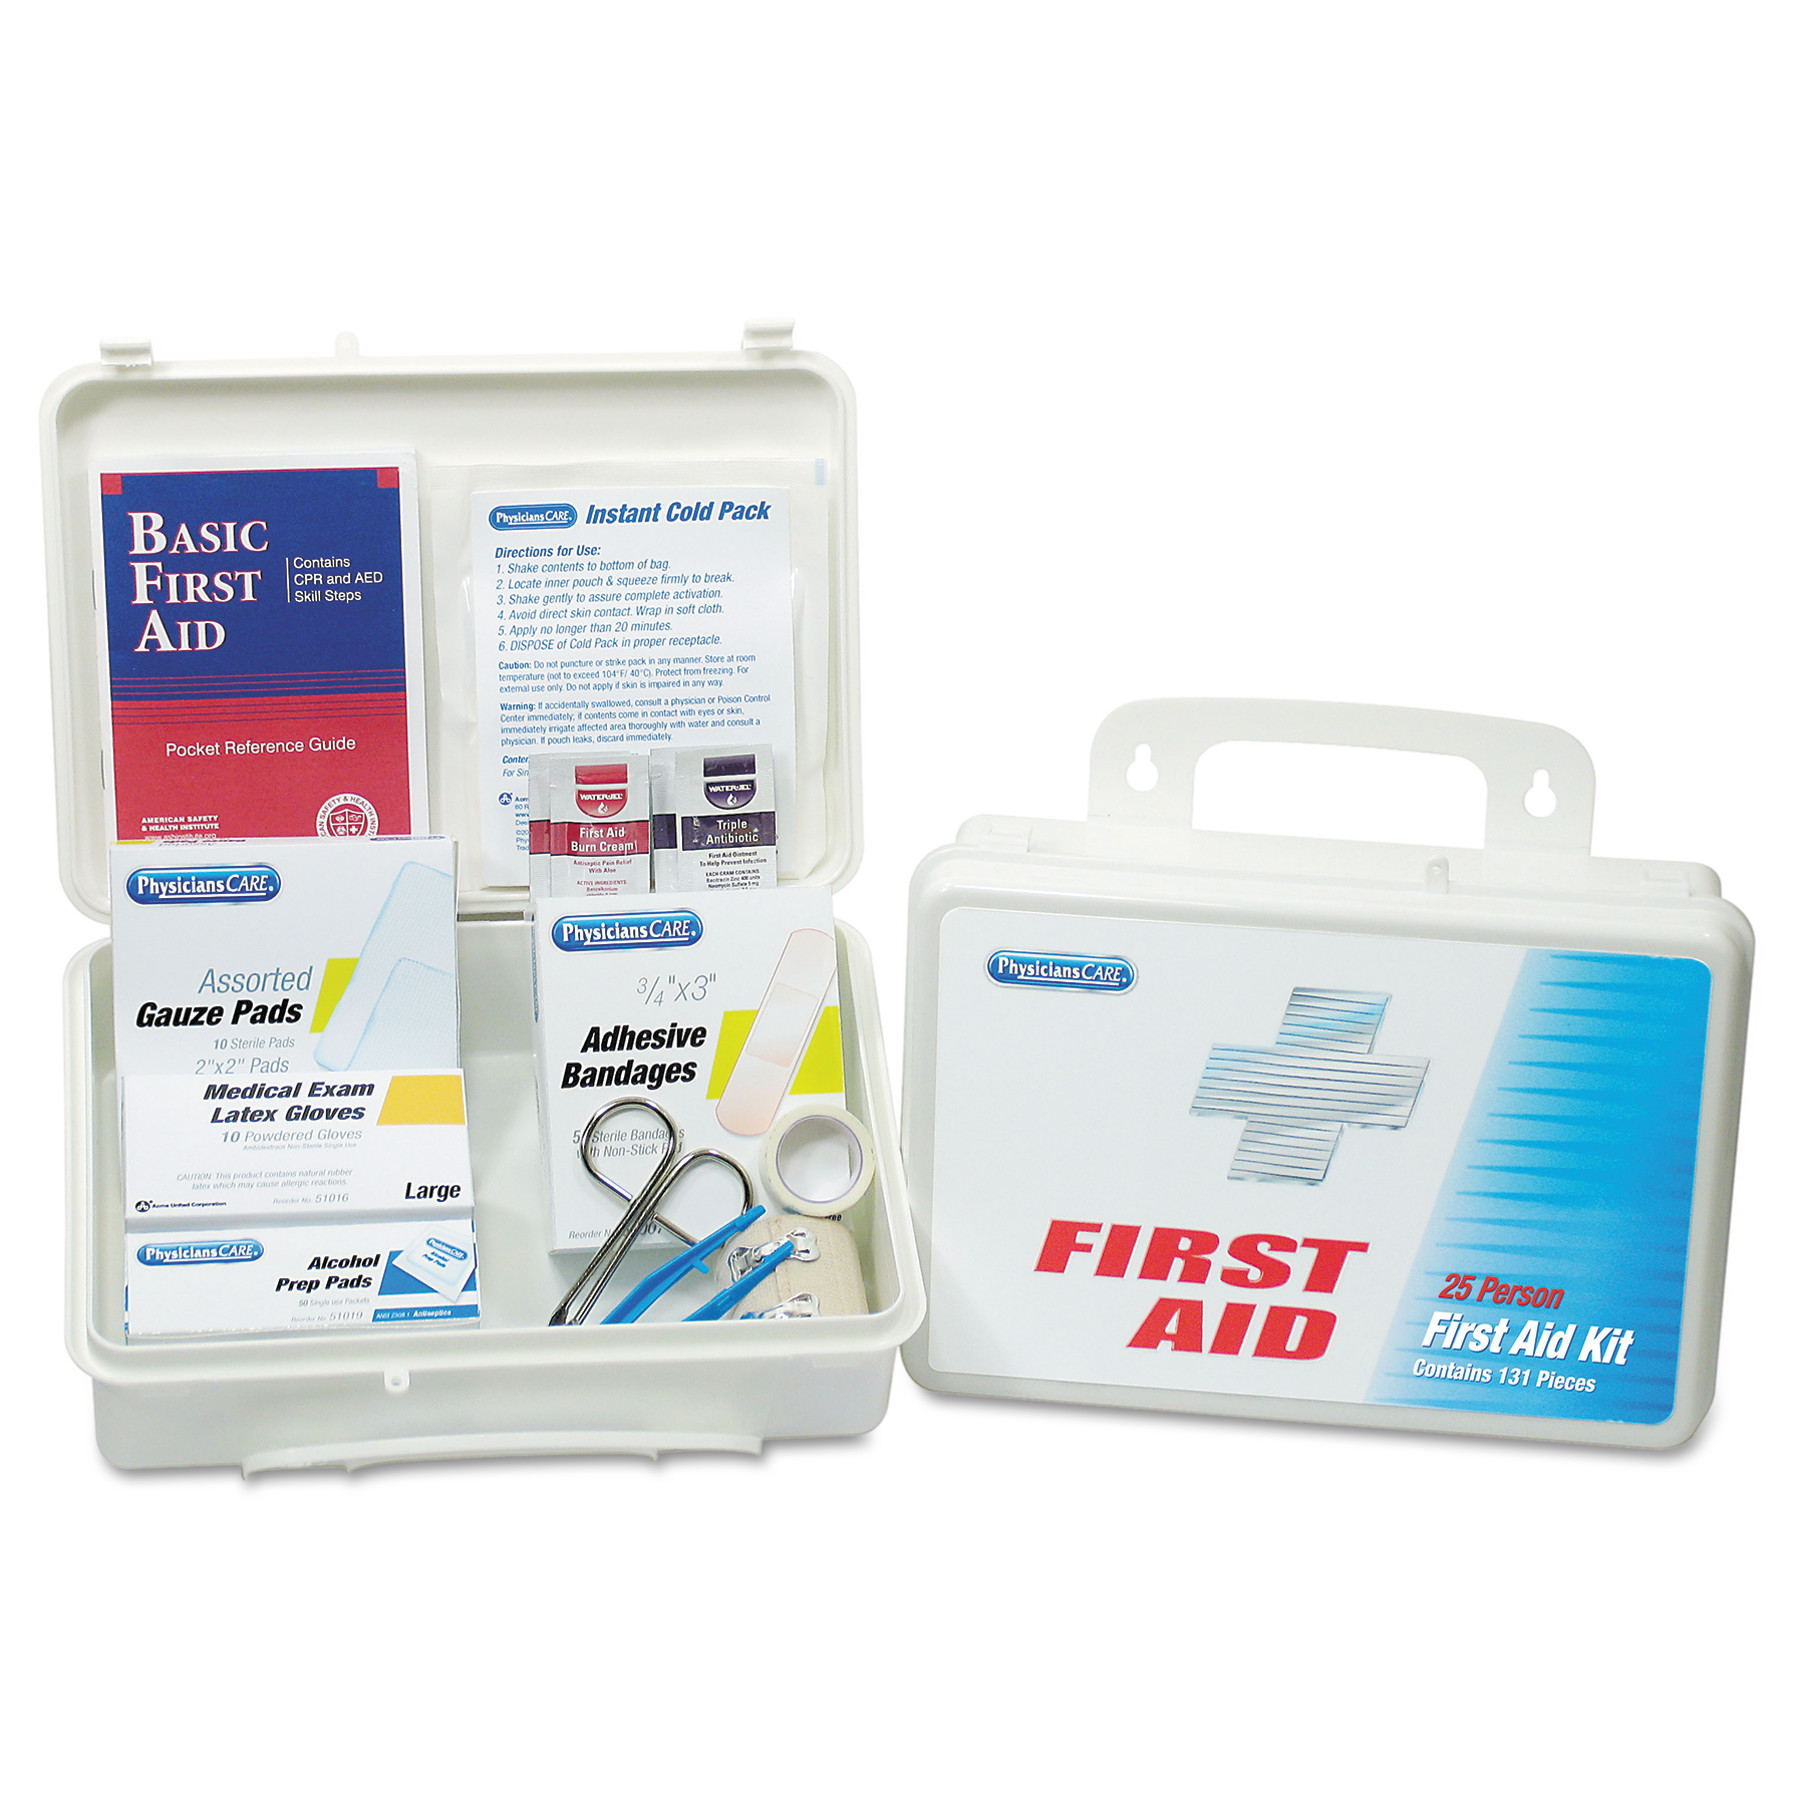 PhysiciansCare by First Aid Only Office First Aid Kit, for Up to 25 People, 131 Pieces Kit by ACME UNITED CORPORATION